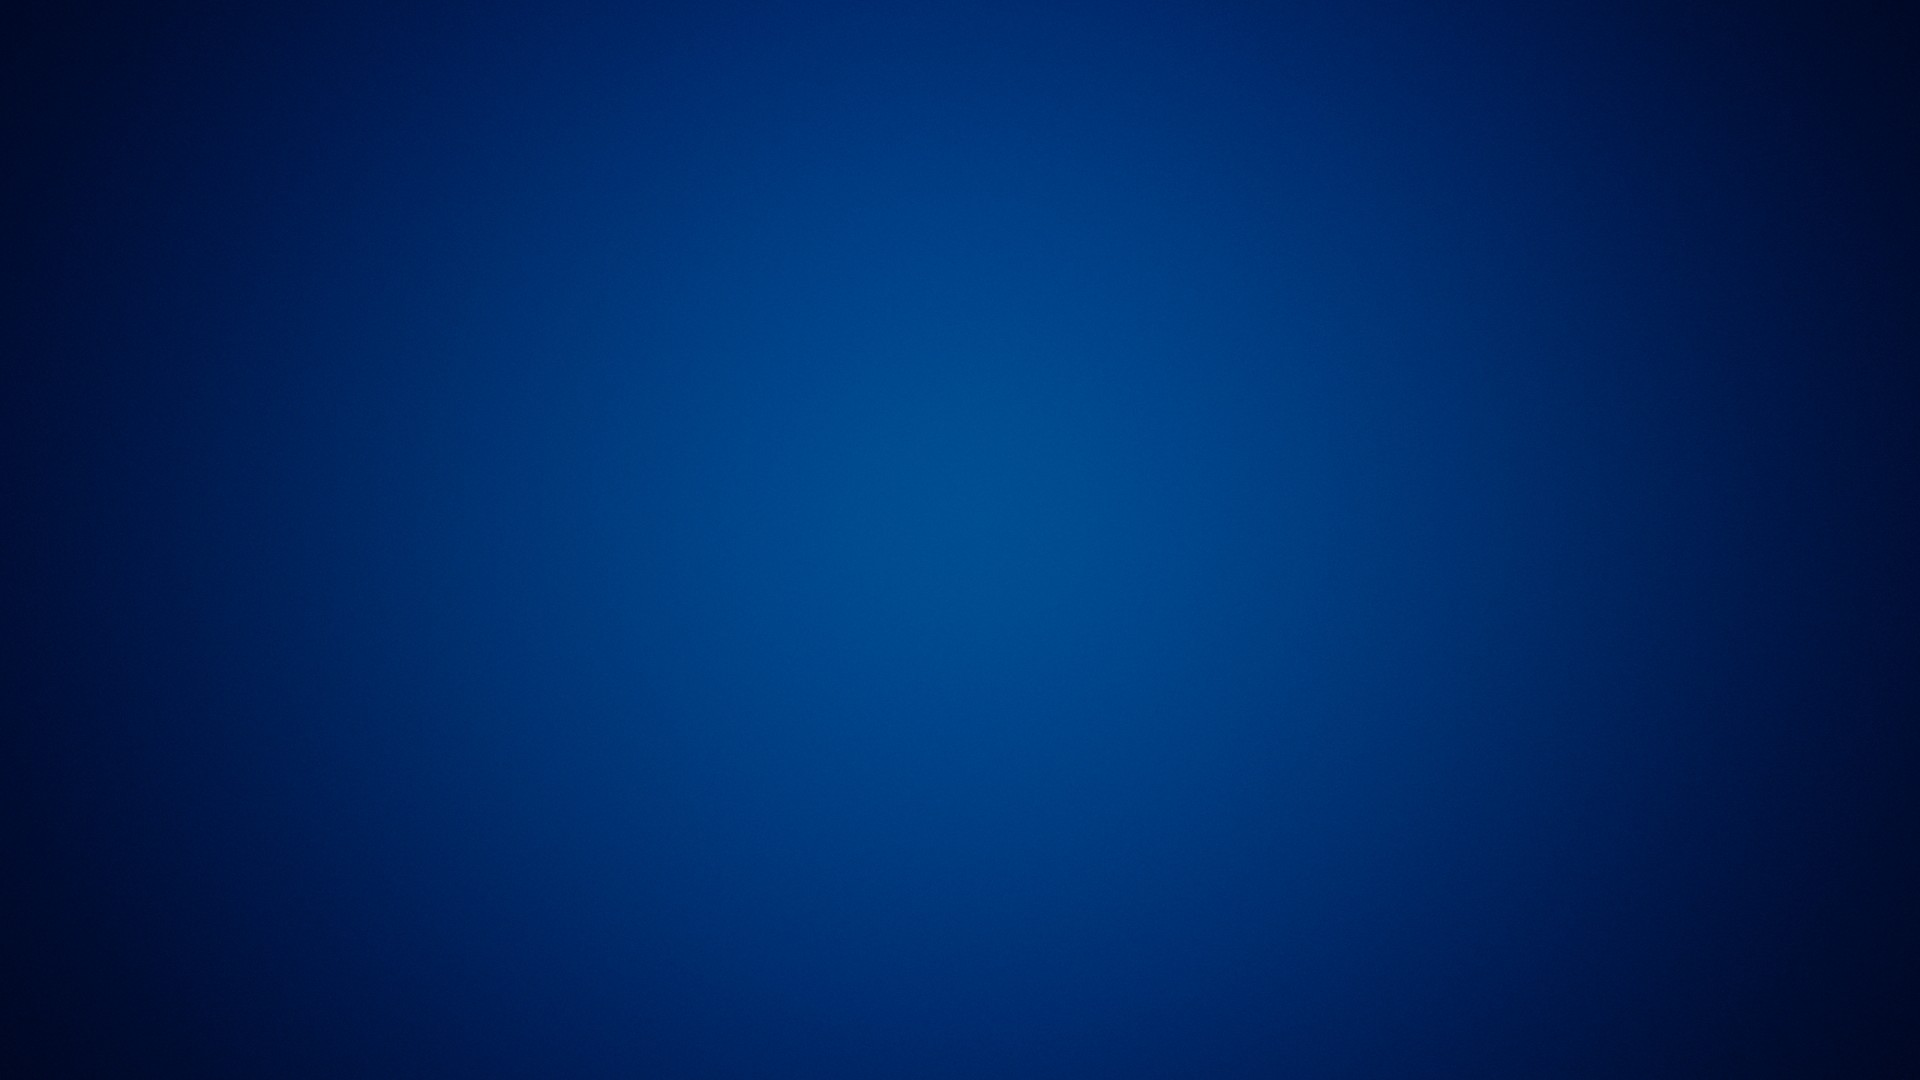 Res: 1920x1080, blue-gradient-wallpaper-397-446-hd-wallpapers - Gynaecologists Doctors in  Mumbai